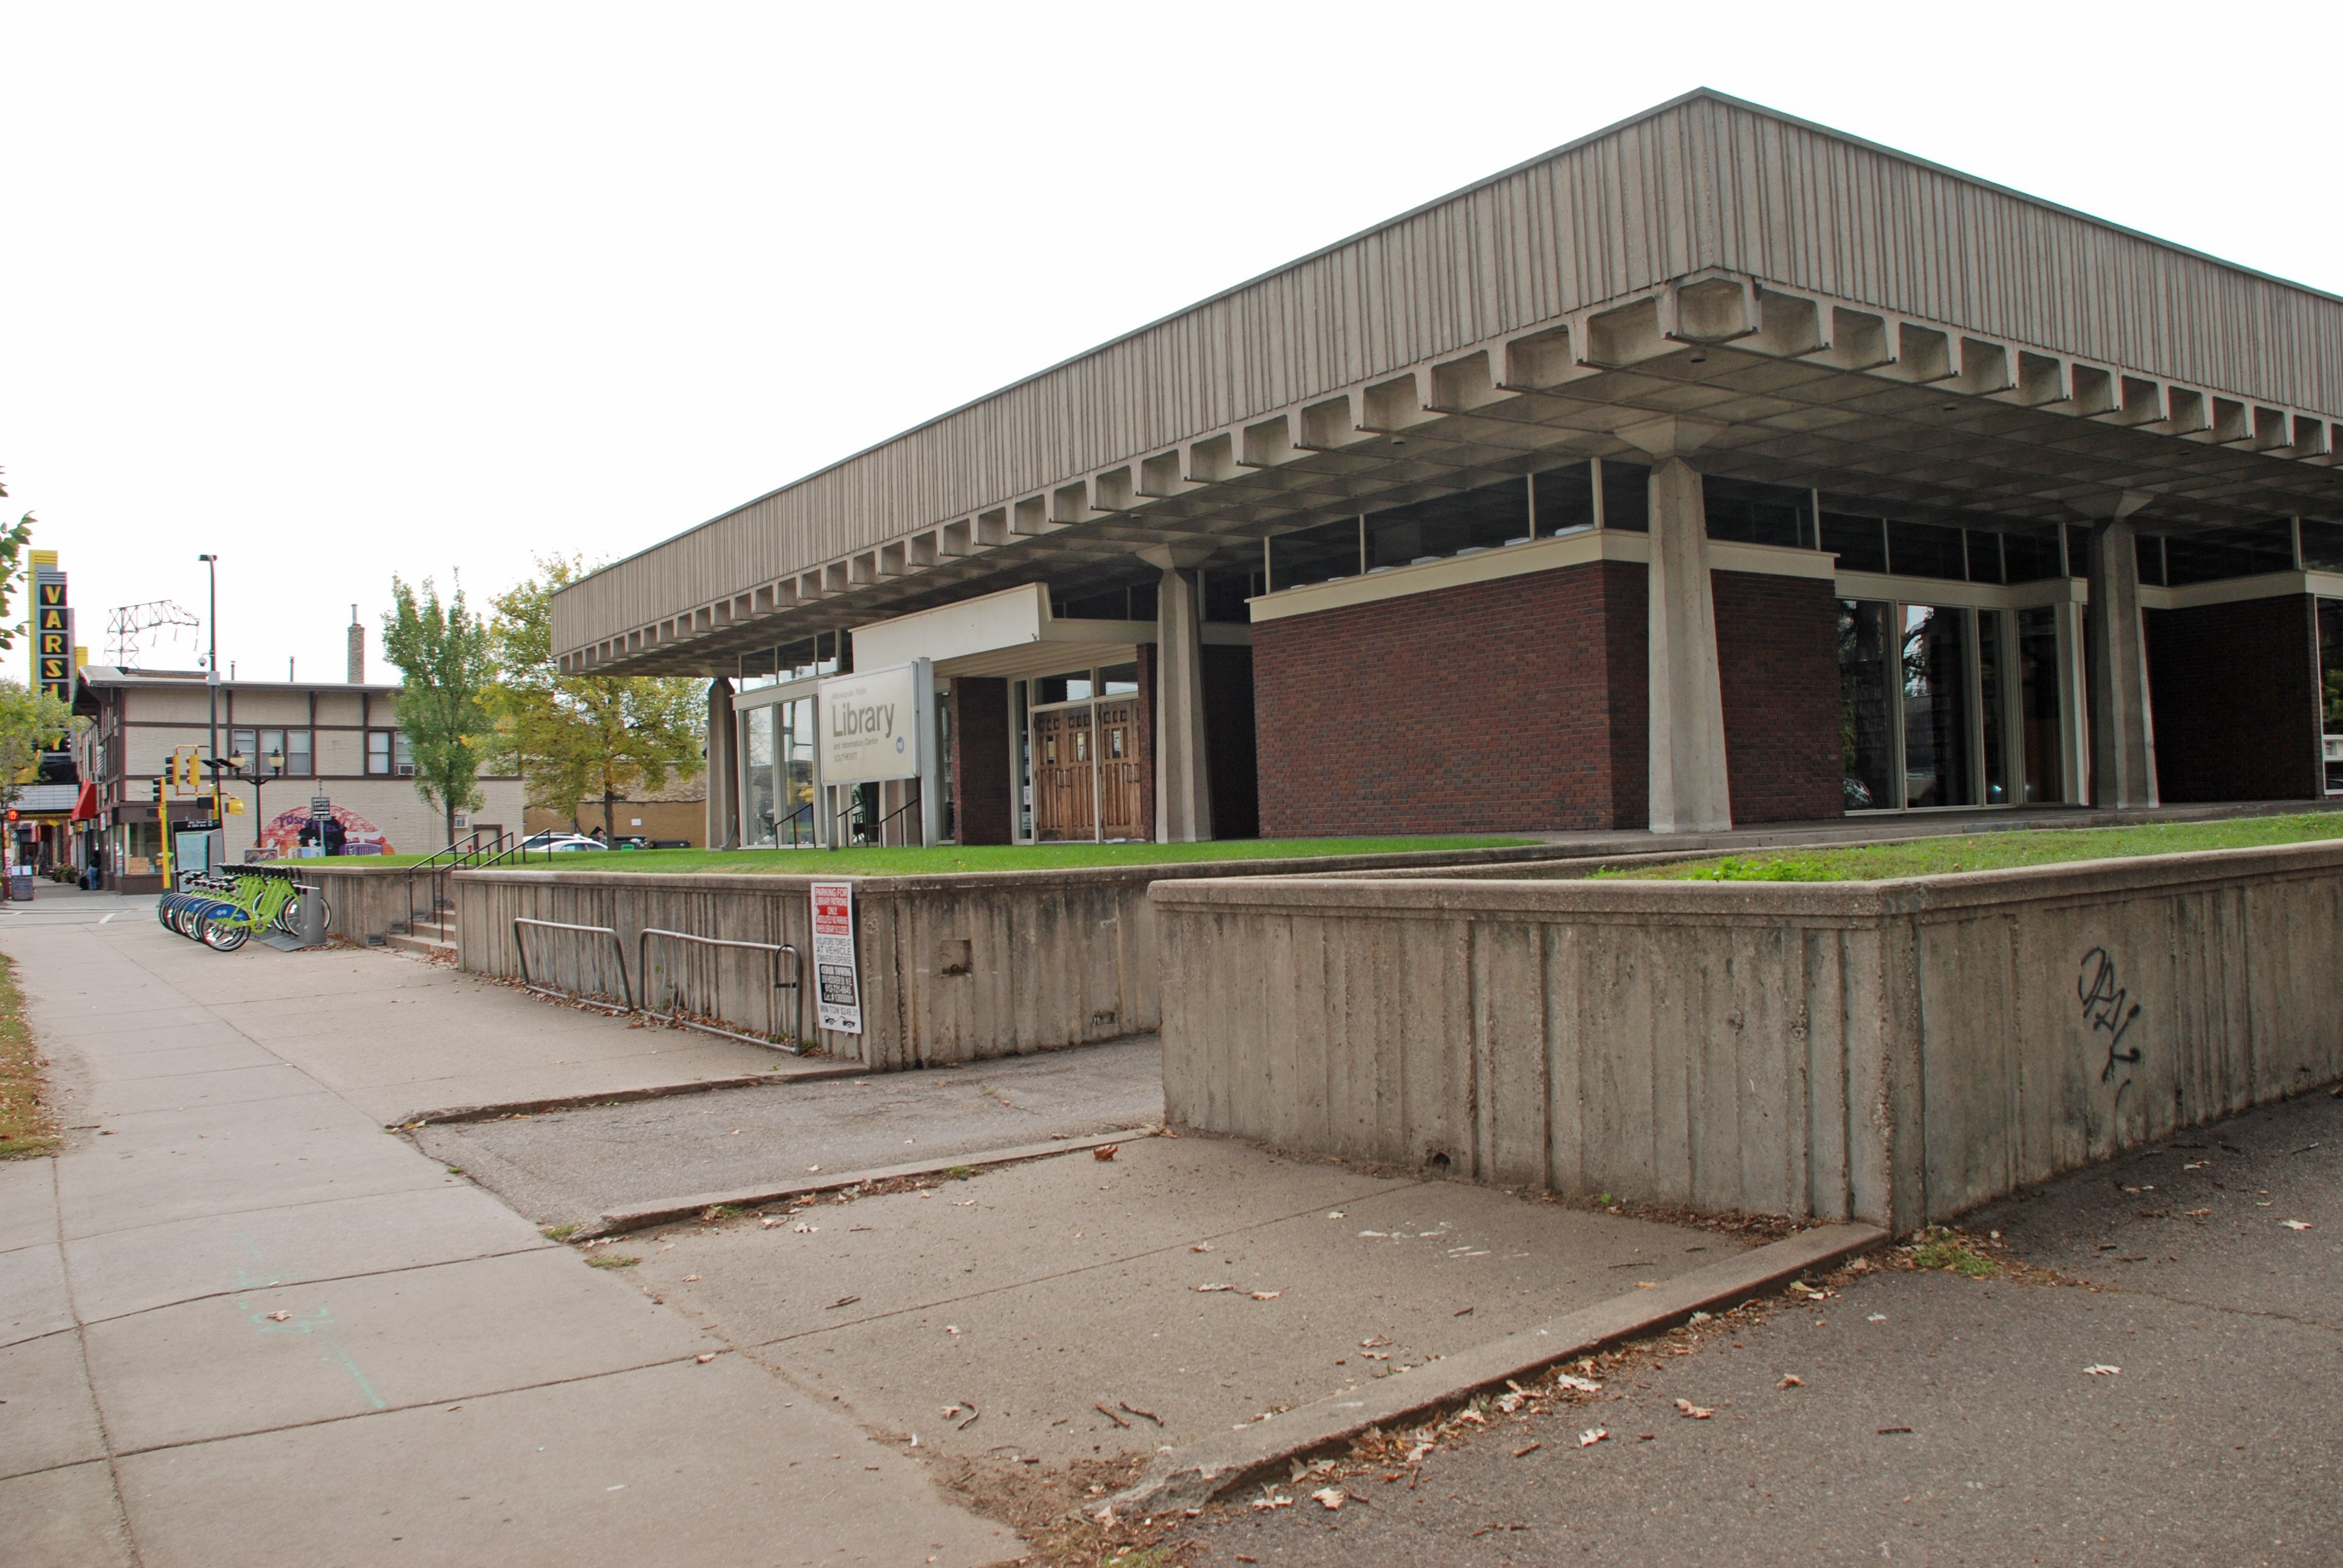 photo by bill huntzicker the southeast library designed by the late ralph rapson to be a credit union has operated in its dinkytown building since 1967